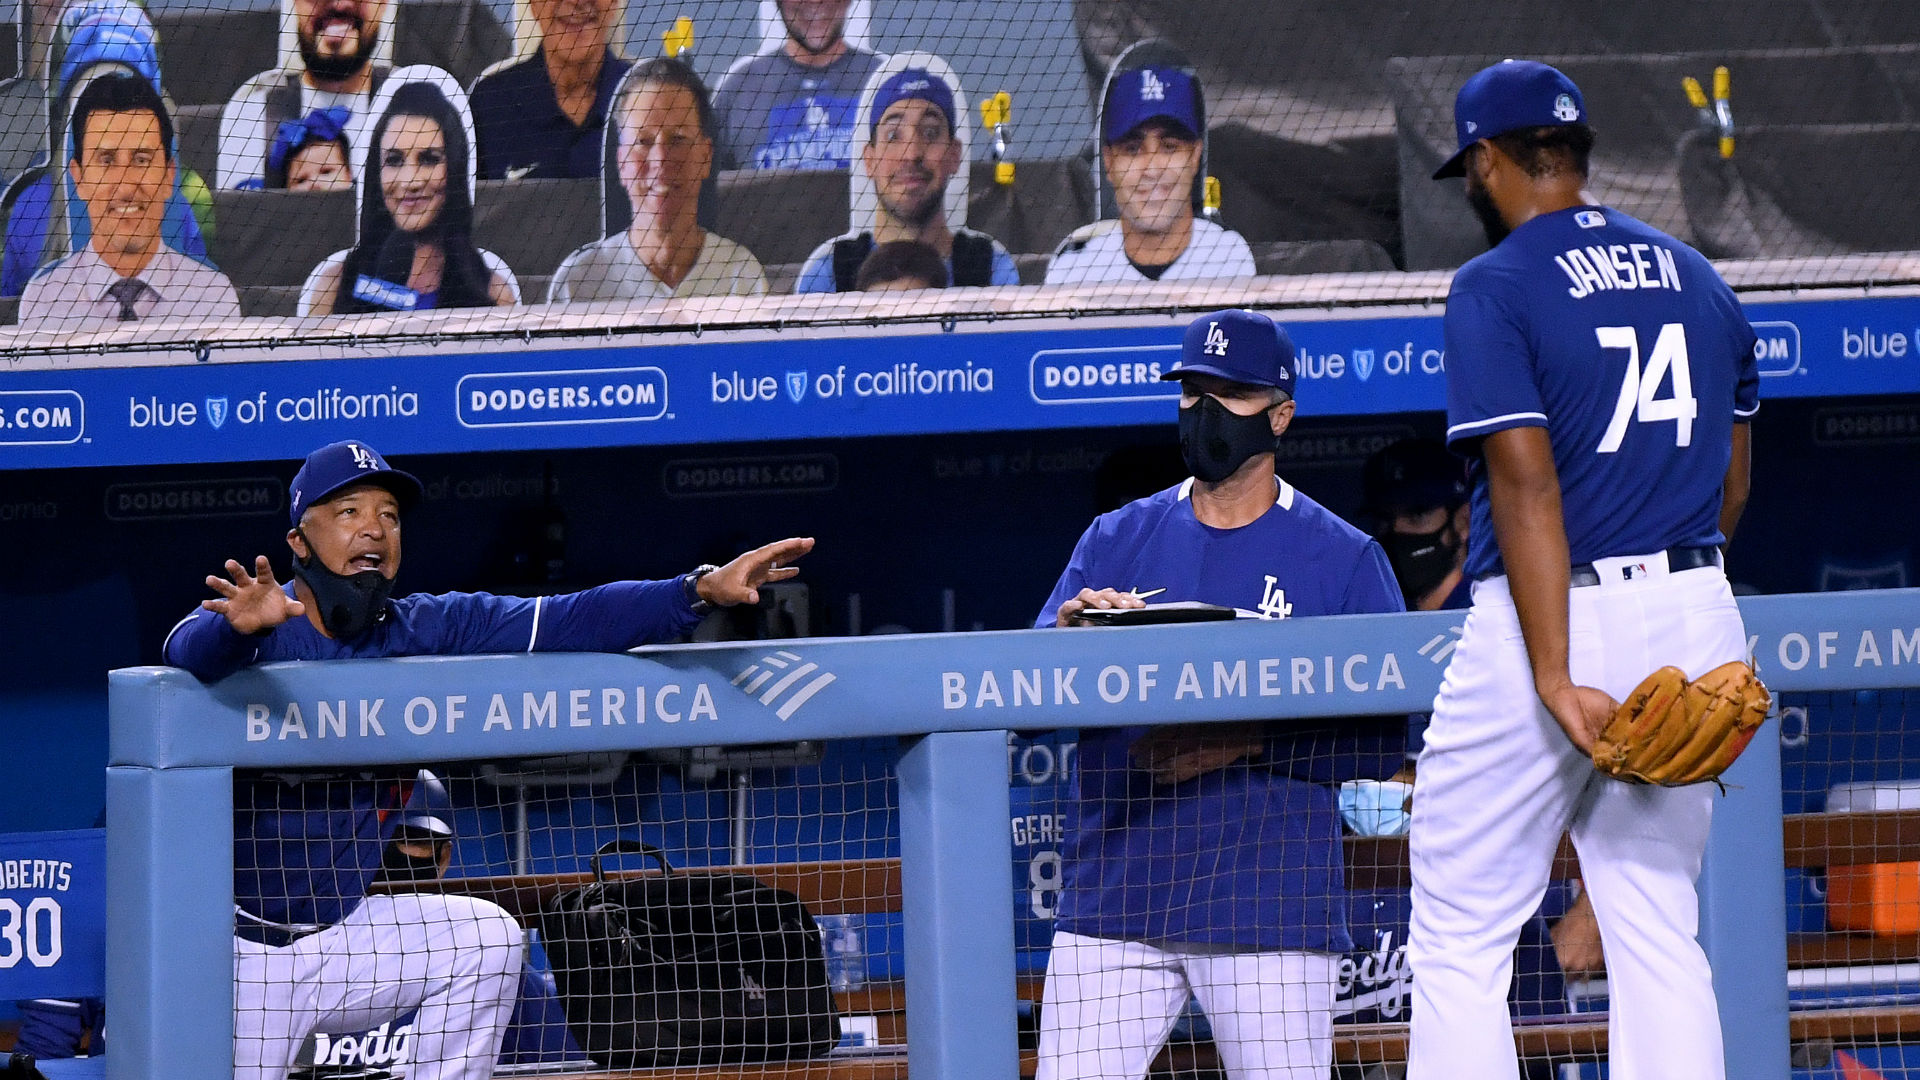 MLB coronavirus rules: No more spitting, finger-licking & other things players can't do during games 1